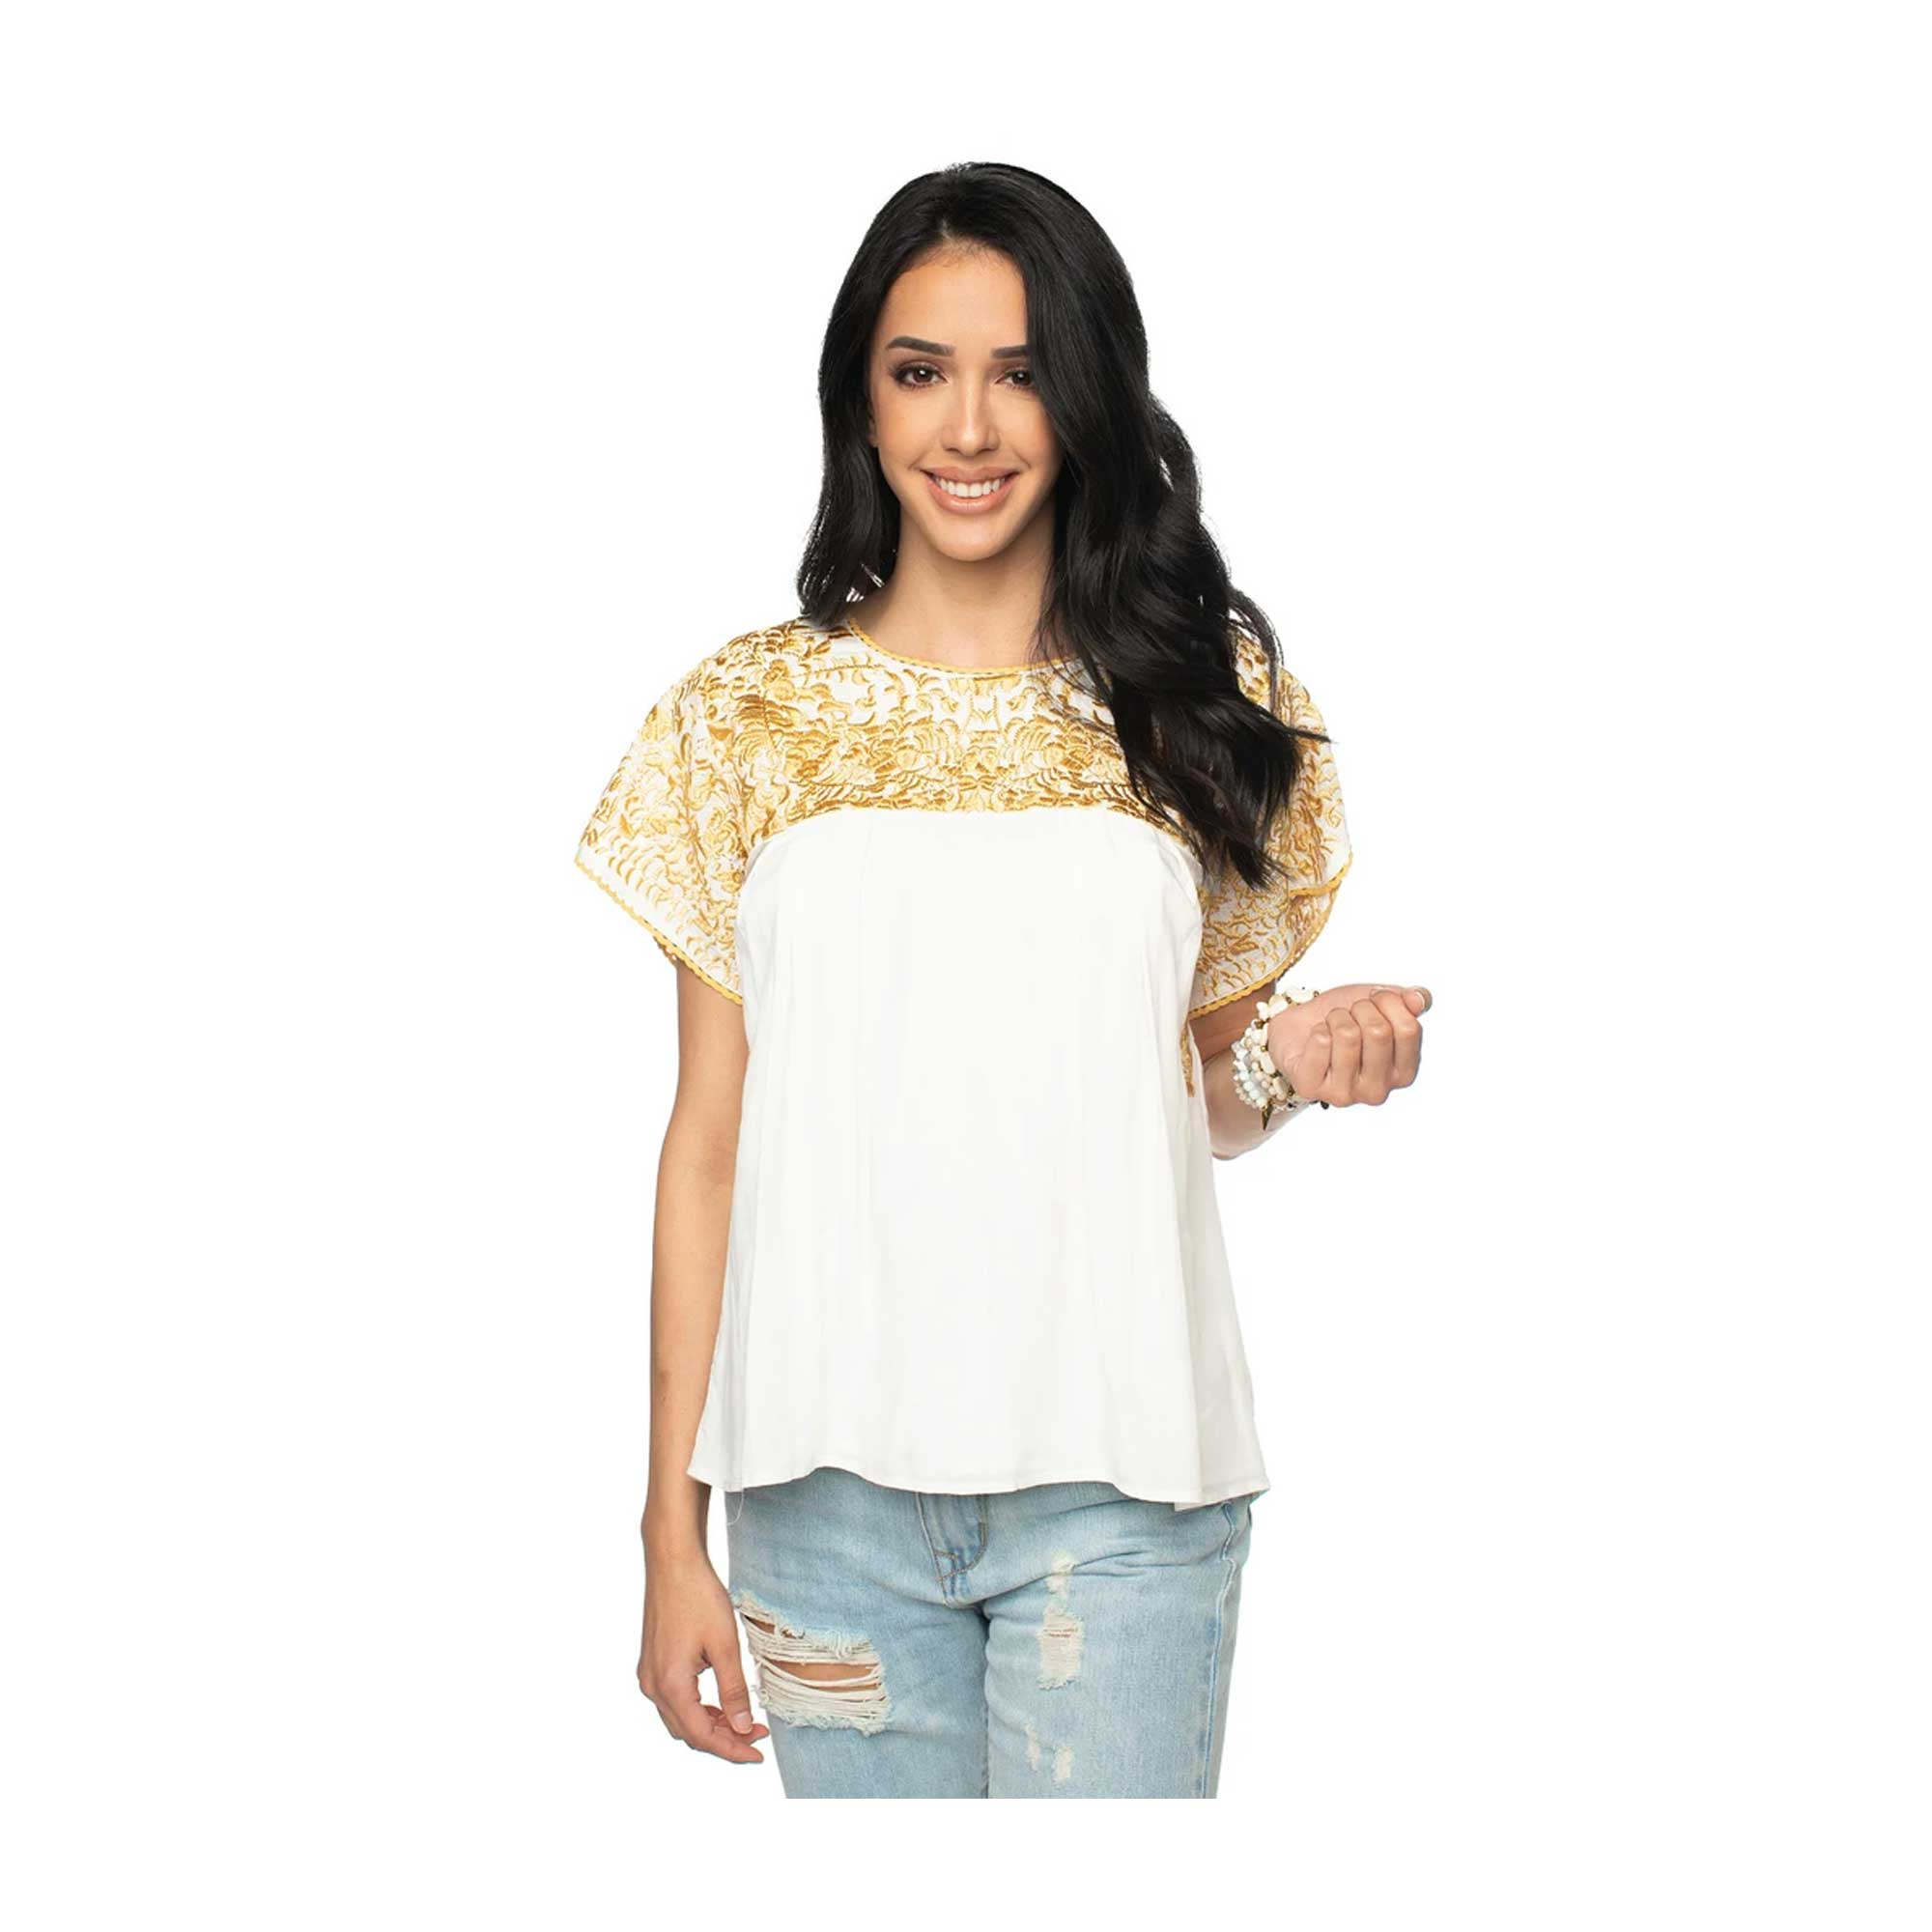 BuddyLove Greek Women's White Embroidered Top